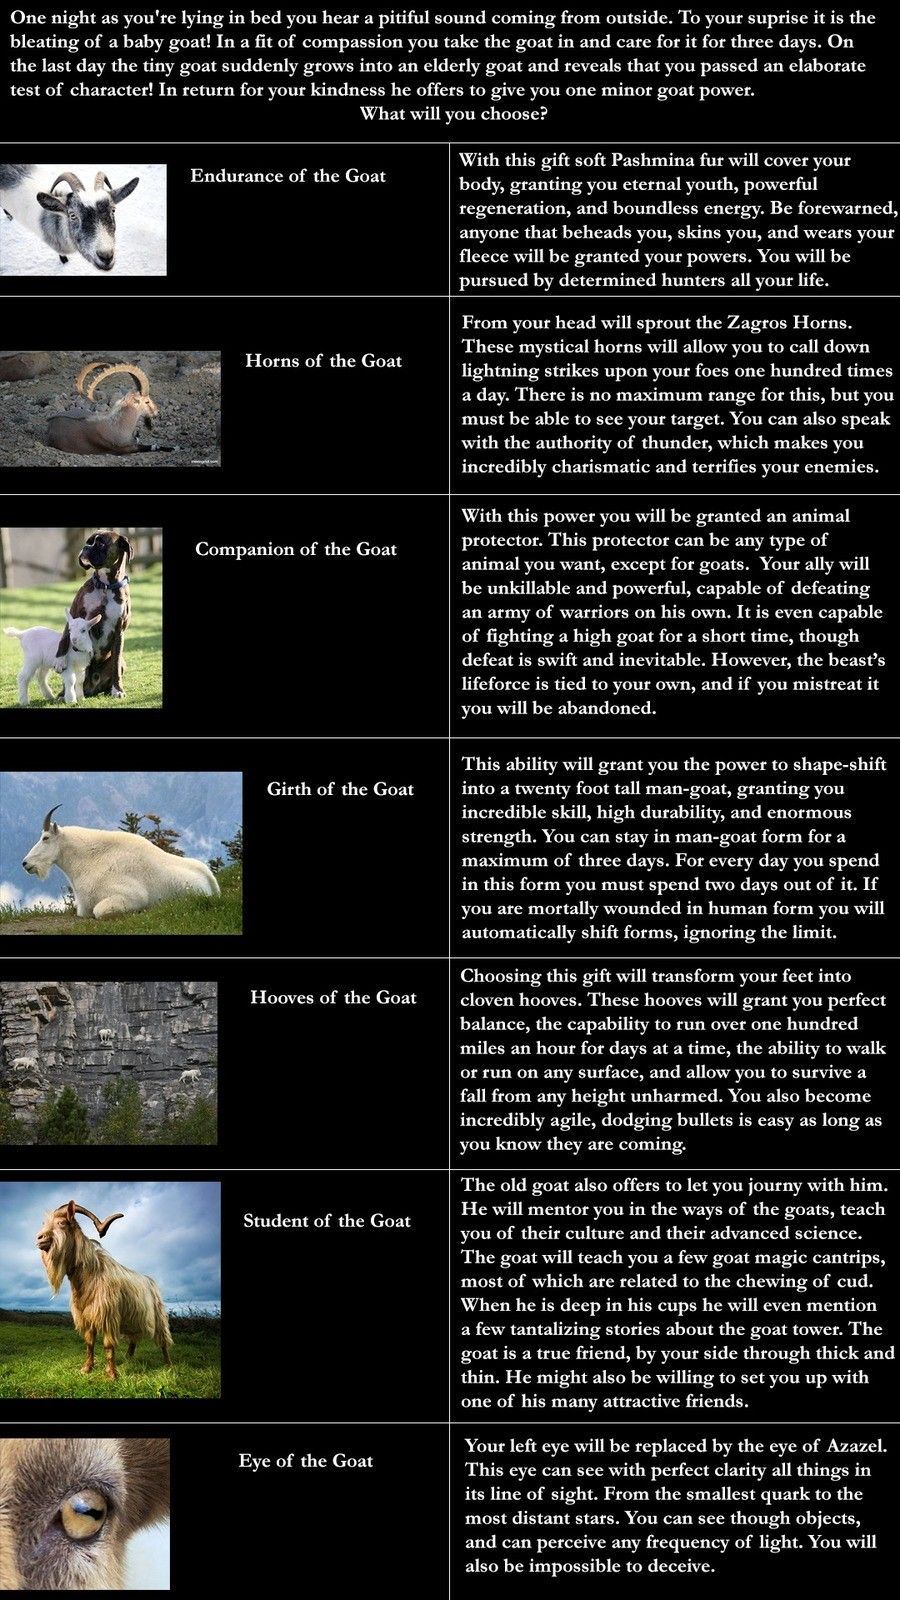 Goatse CYOA. .. Eye of the goat. gain a true understanding of the universe and our place in it.